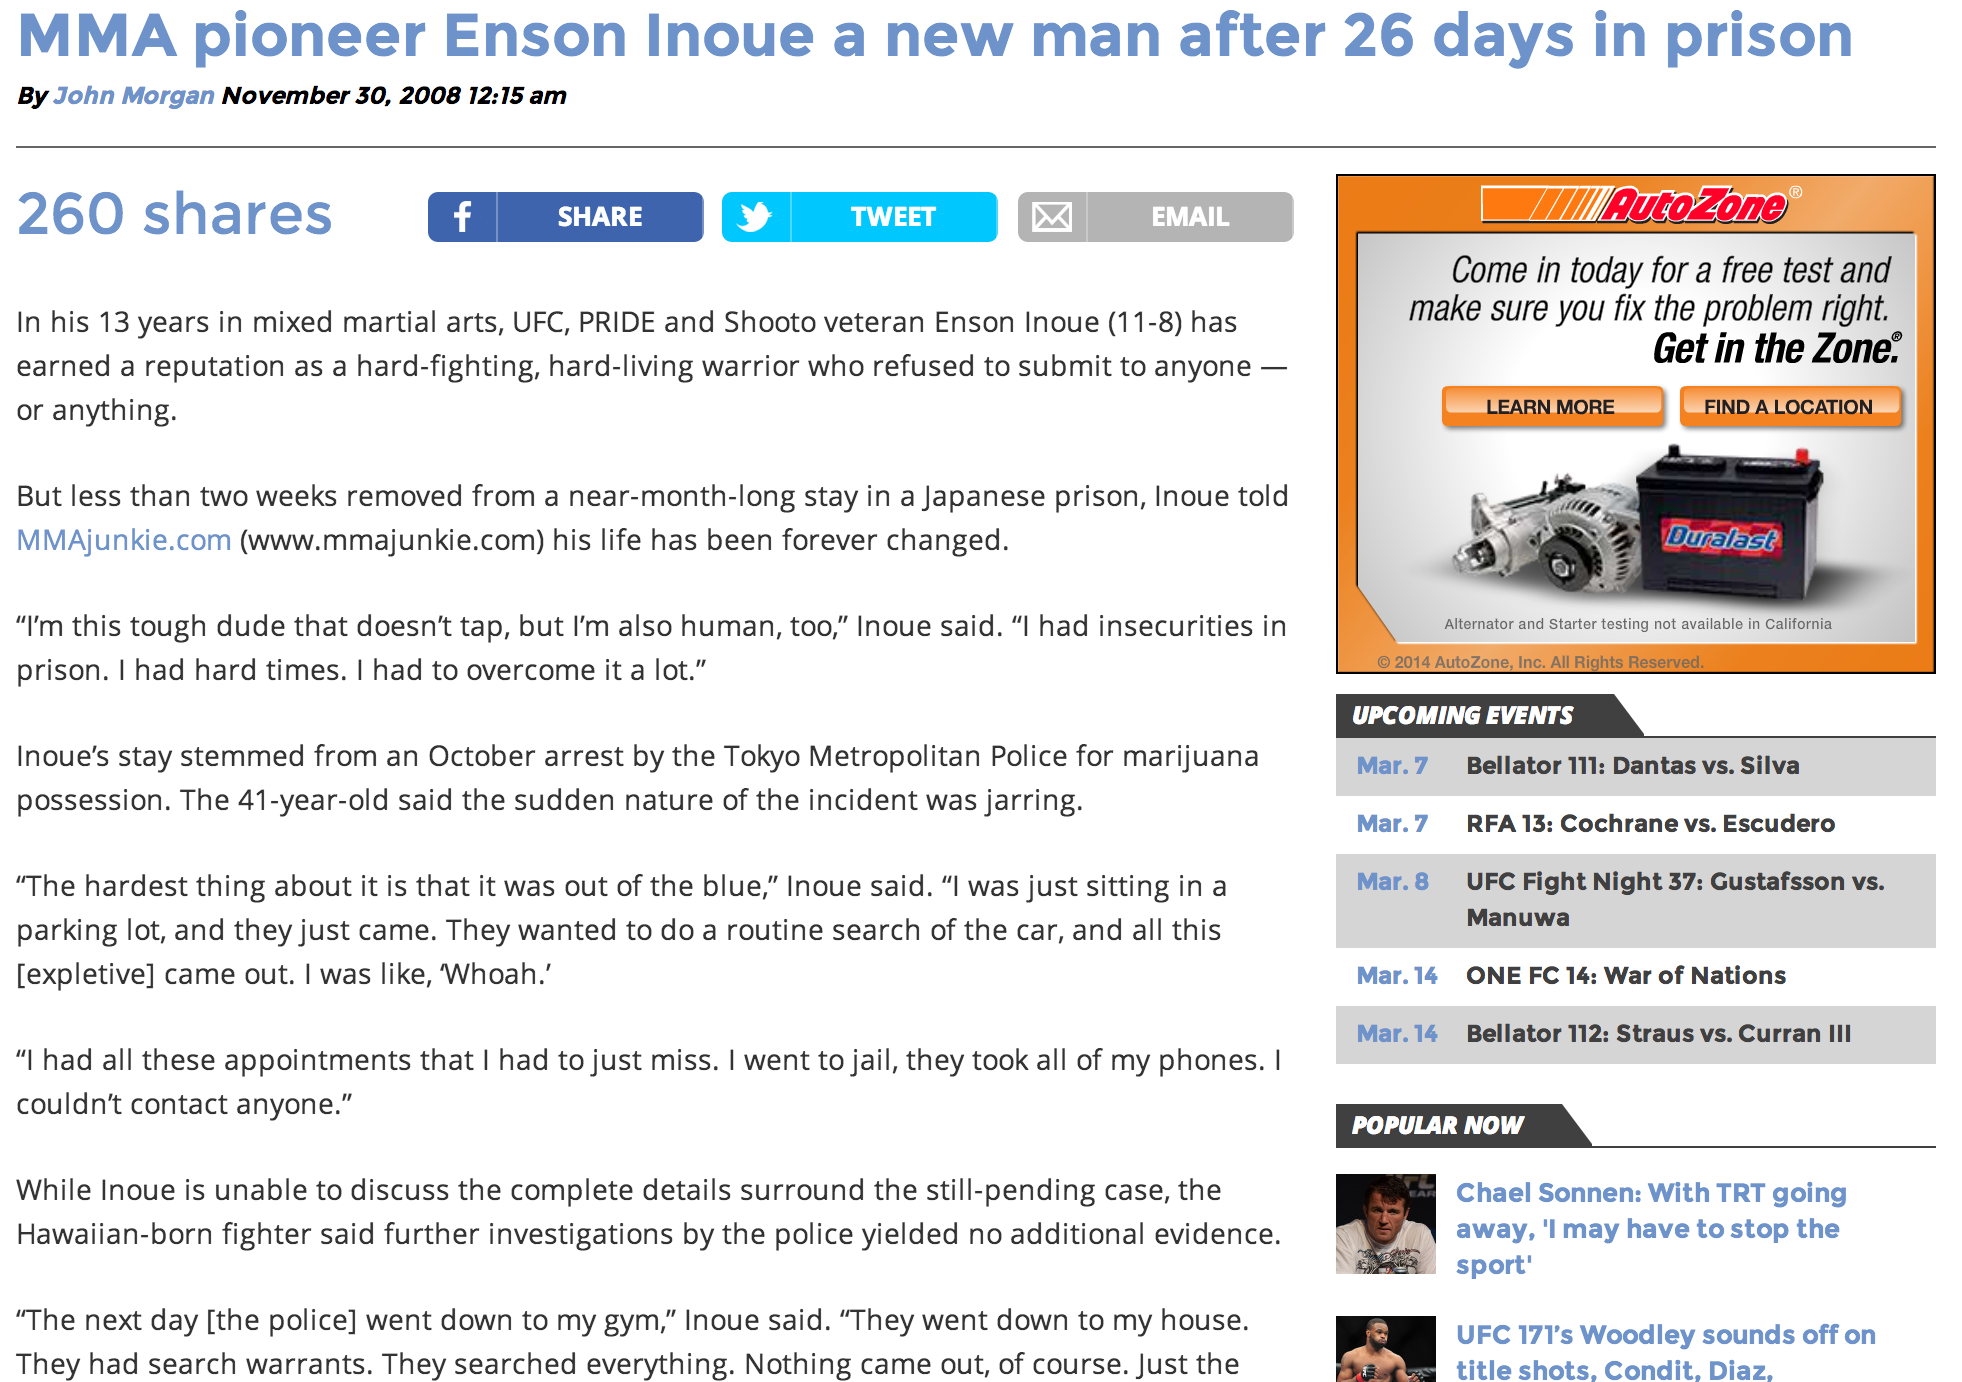 MMA pioneer Enson Inoue a new man after 26 days in prison   By John Morgan | Nov 29, 2008